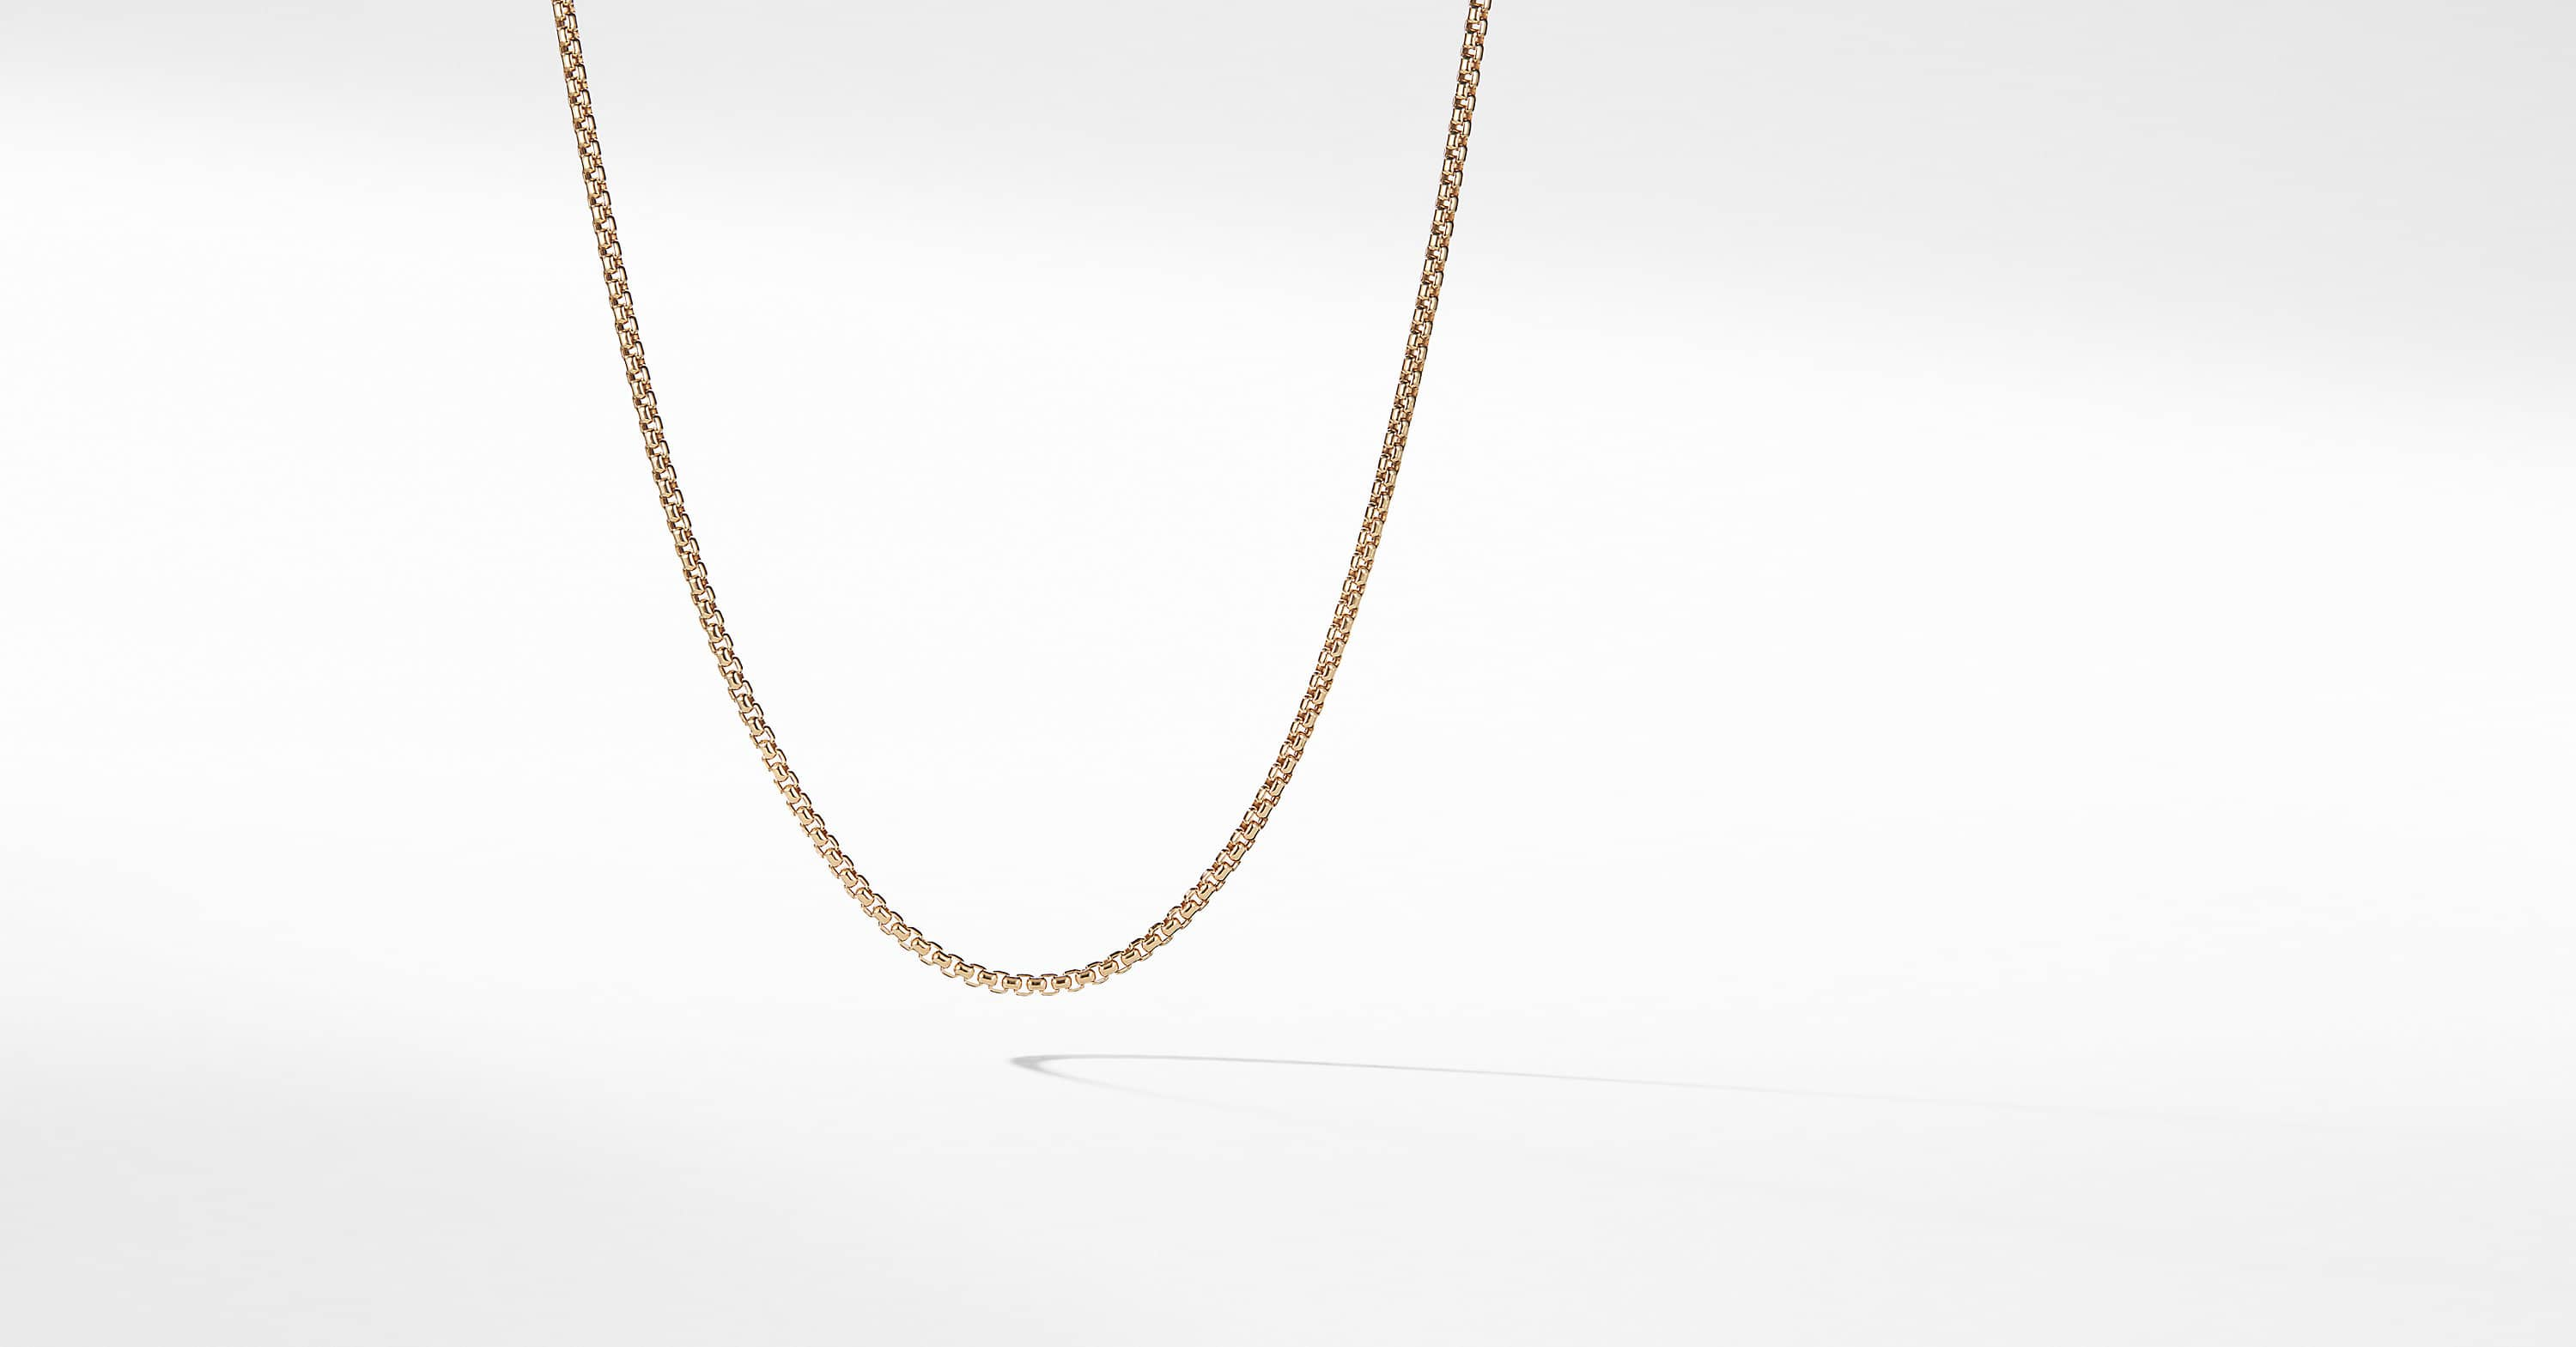 656c58bcdf562 Small Box Chain Necklace in 18K Gold